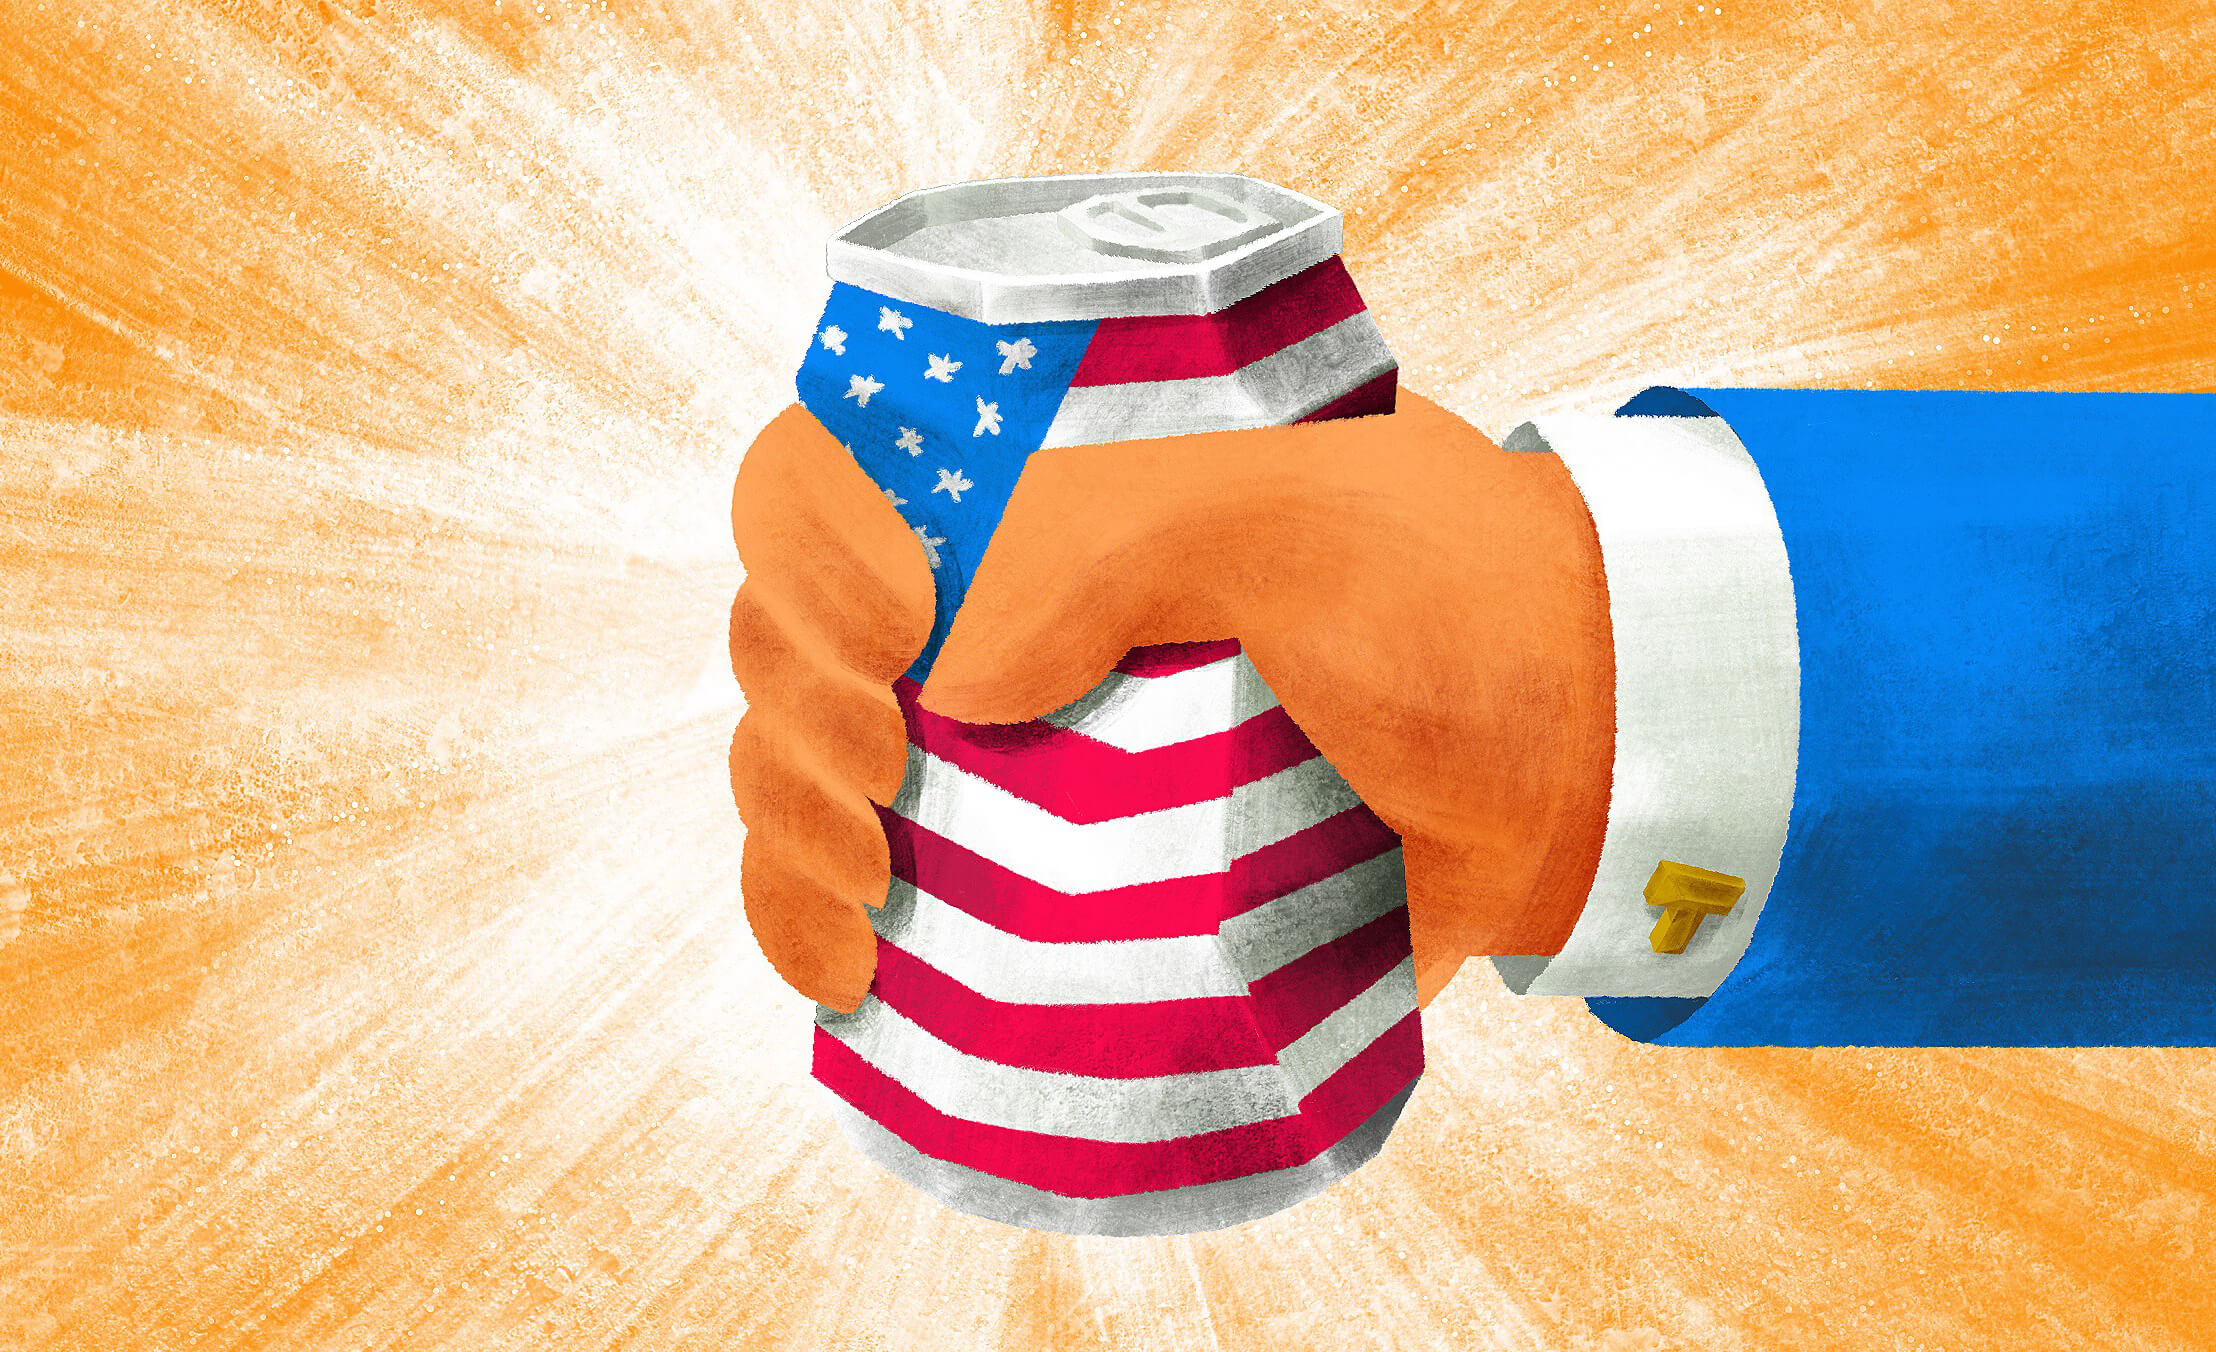 One (Beer) Nation Under Trump